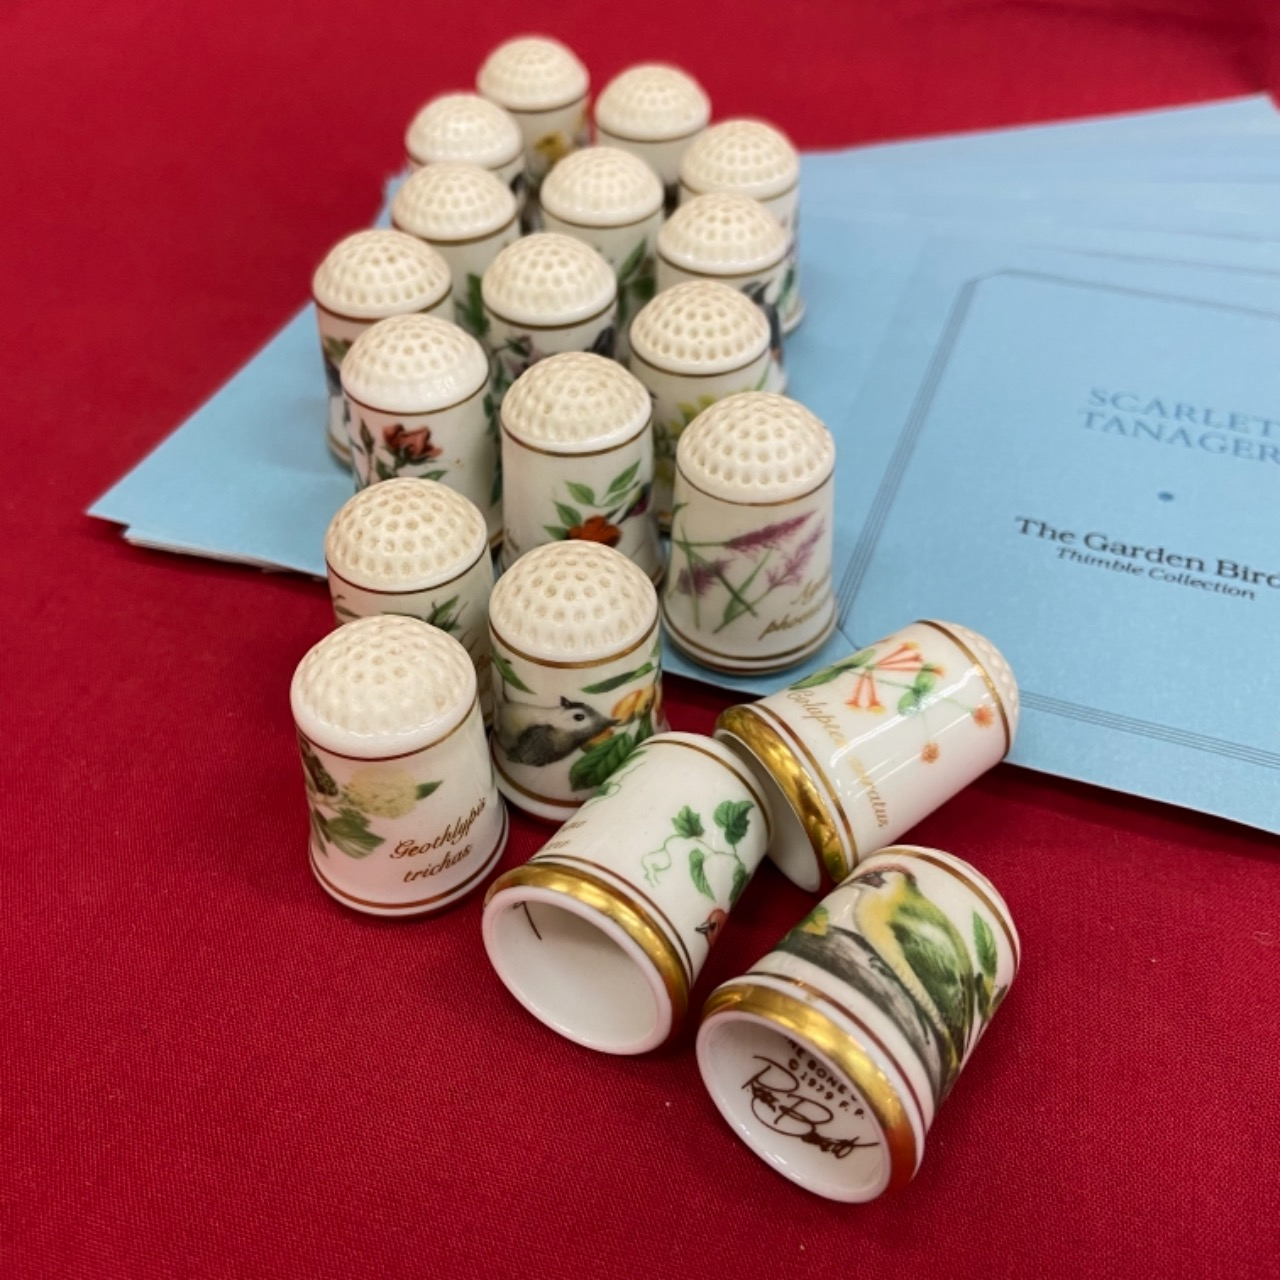 The Garden Birds Thimble Collection by Franklin Mint